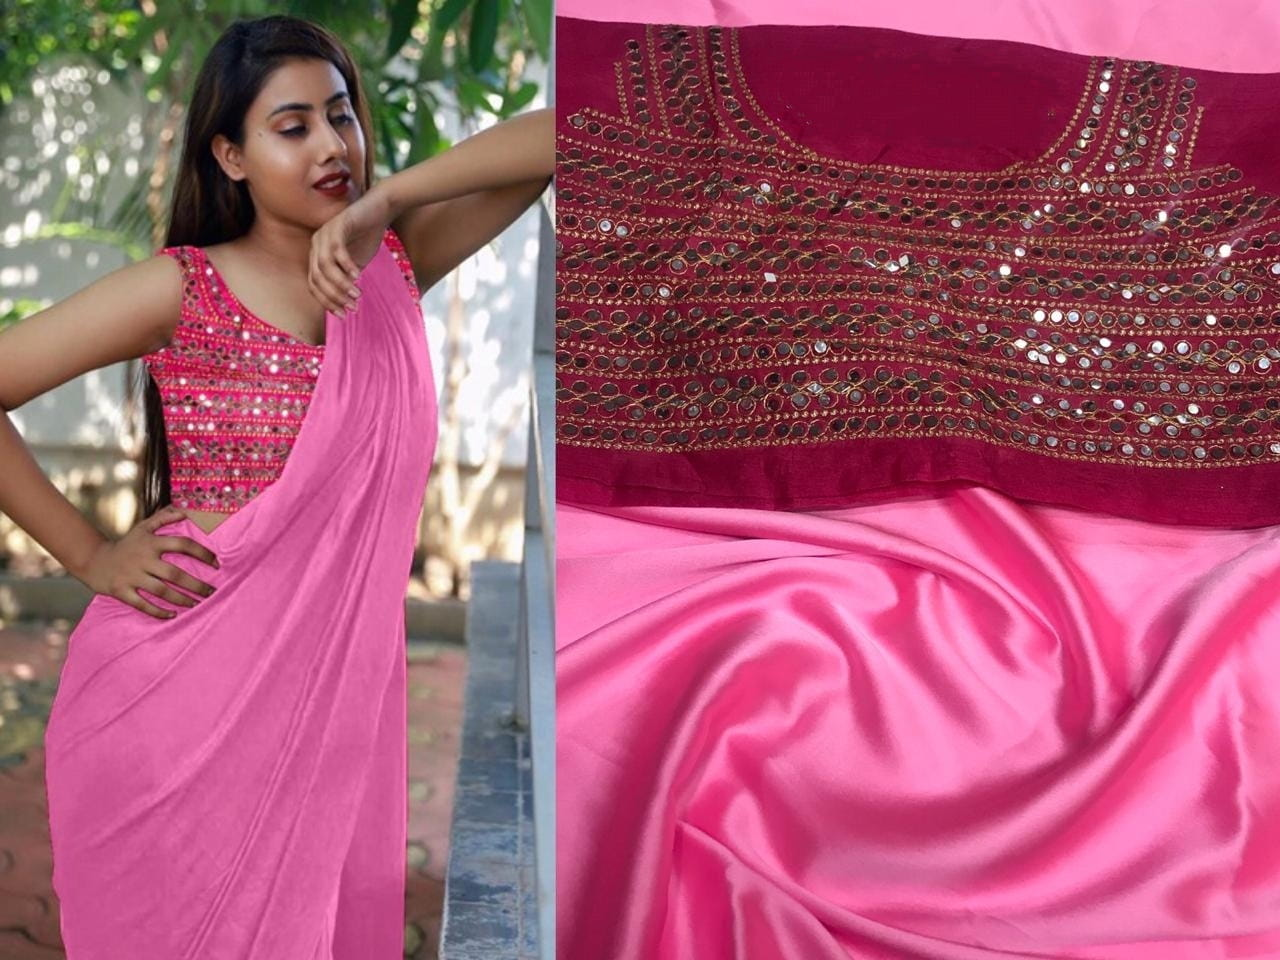 Exquisite Light Pink Color Plain Satin Japan Saree Embroidered Plastic Stone Mirror Work Blouse for Women